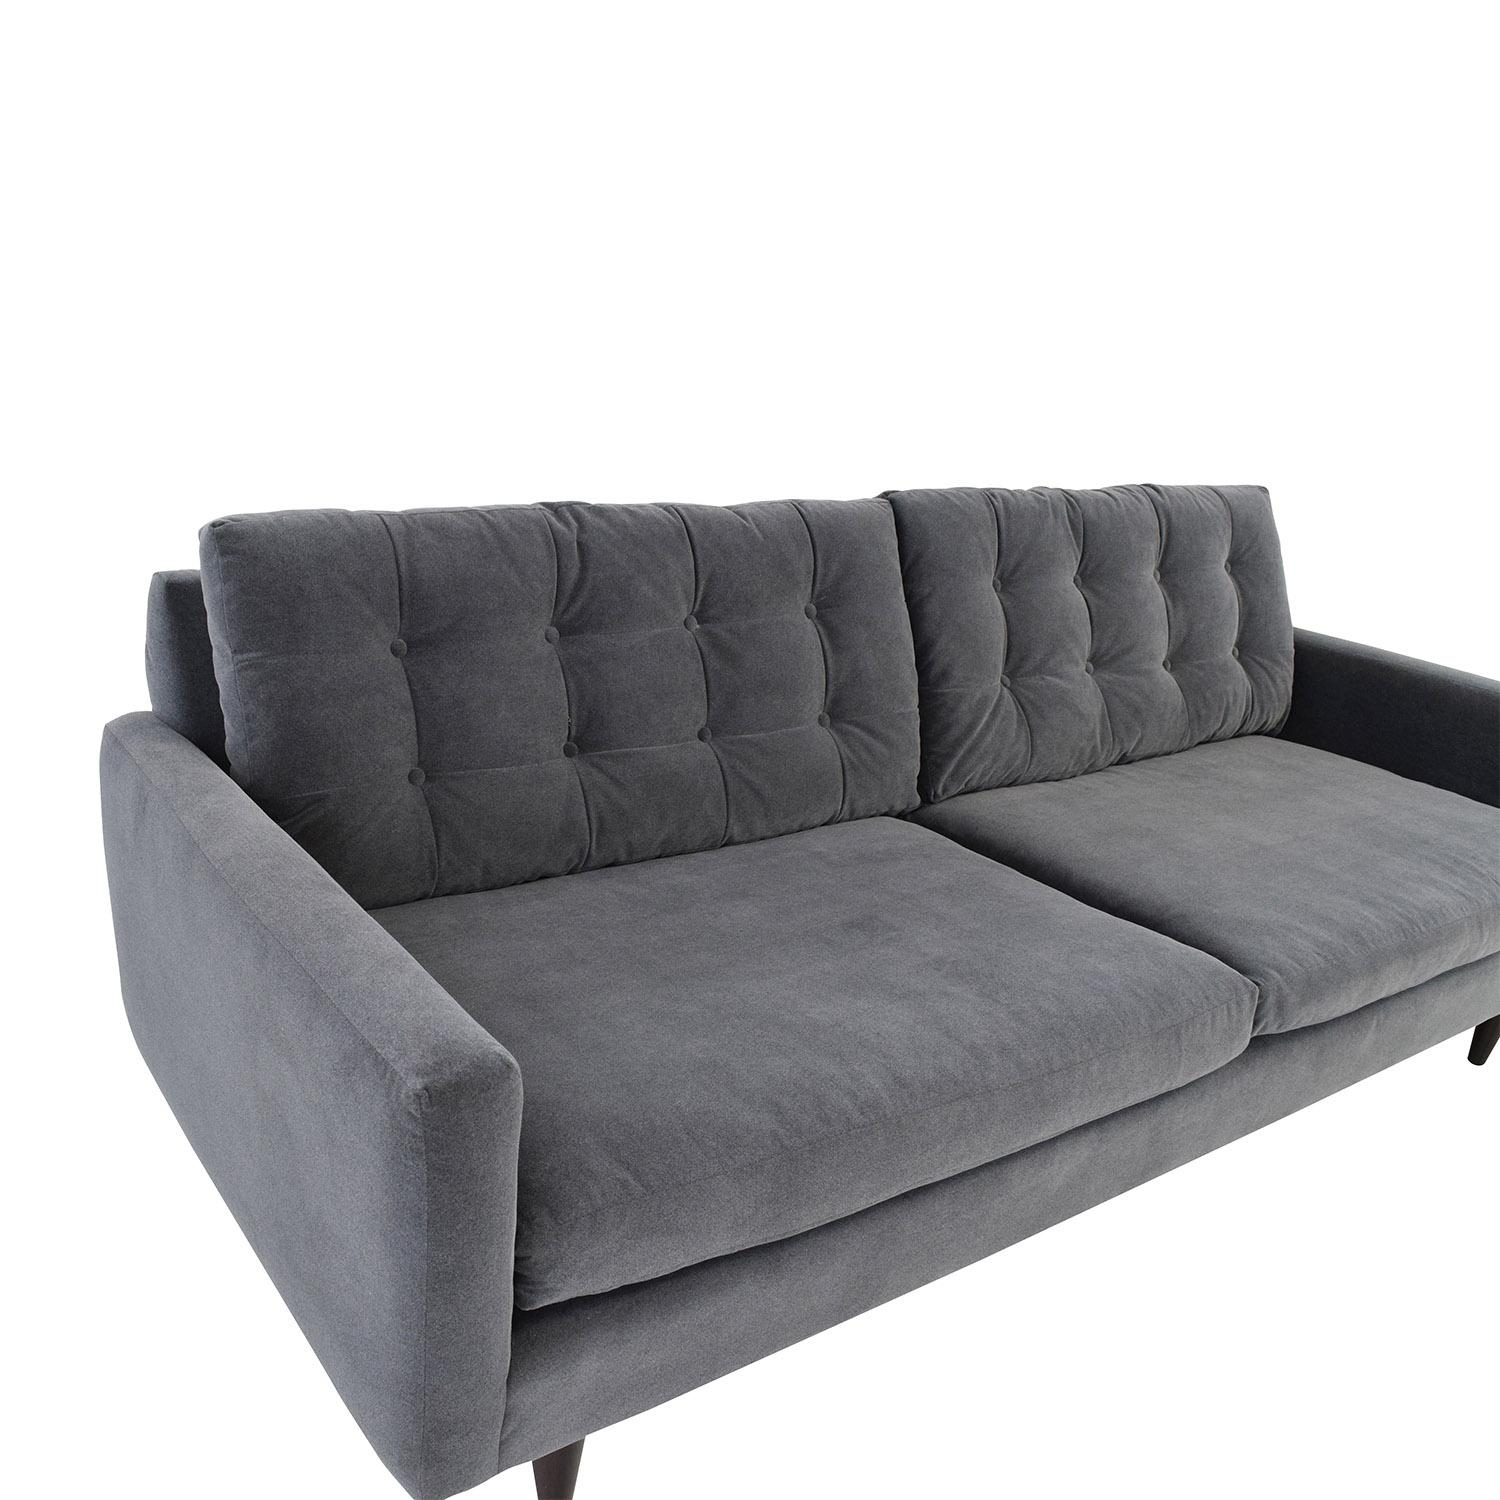 62% Off - Crate And Barrel Crate & Barrel Petrie Mid Century Grey pertaining to Crate and Barrel Futon Sofas